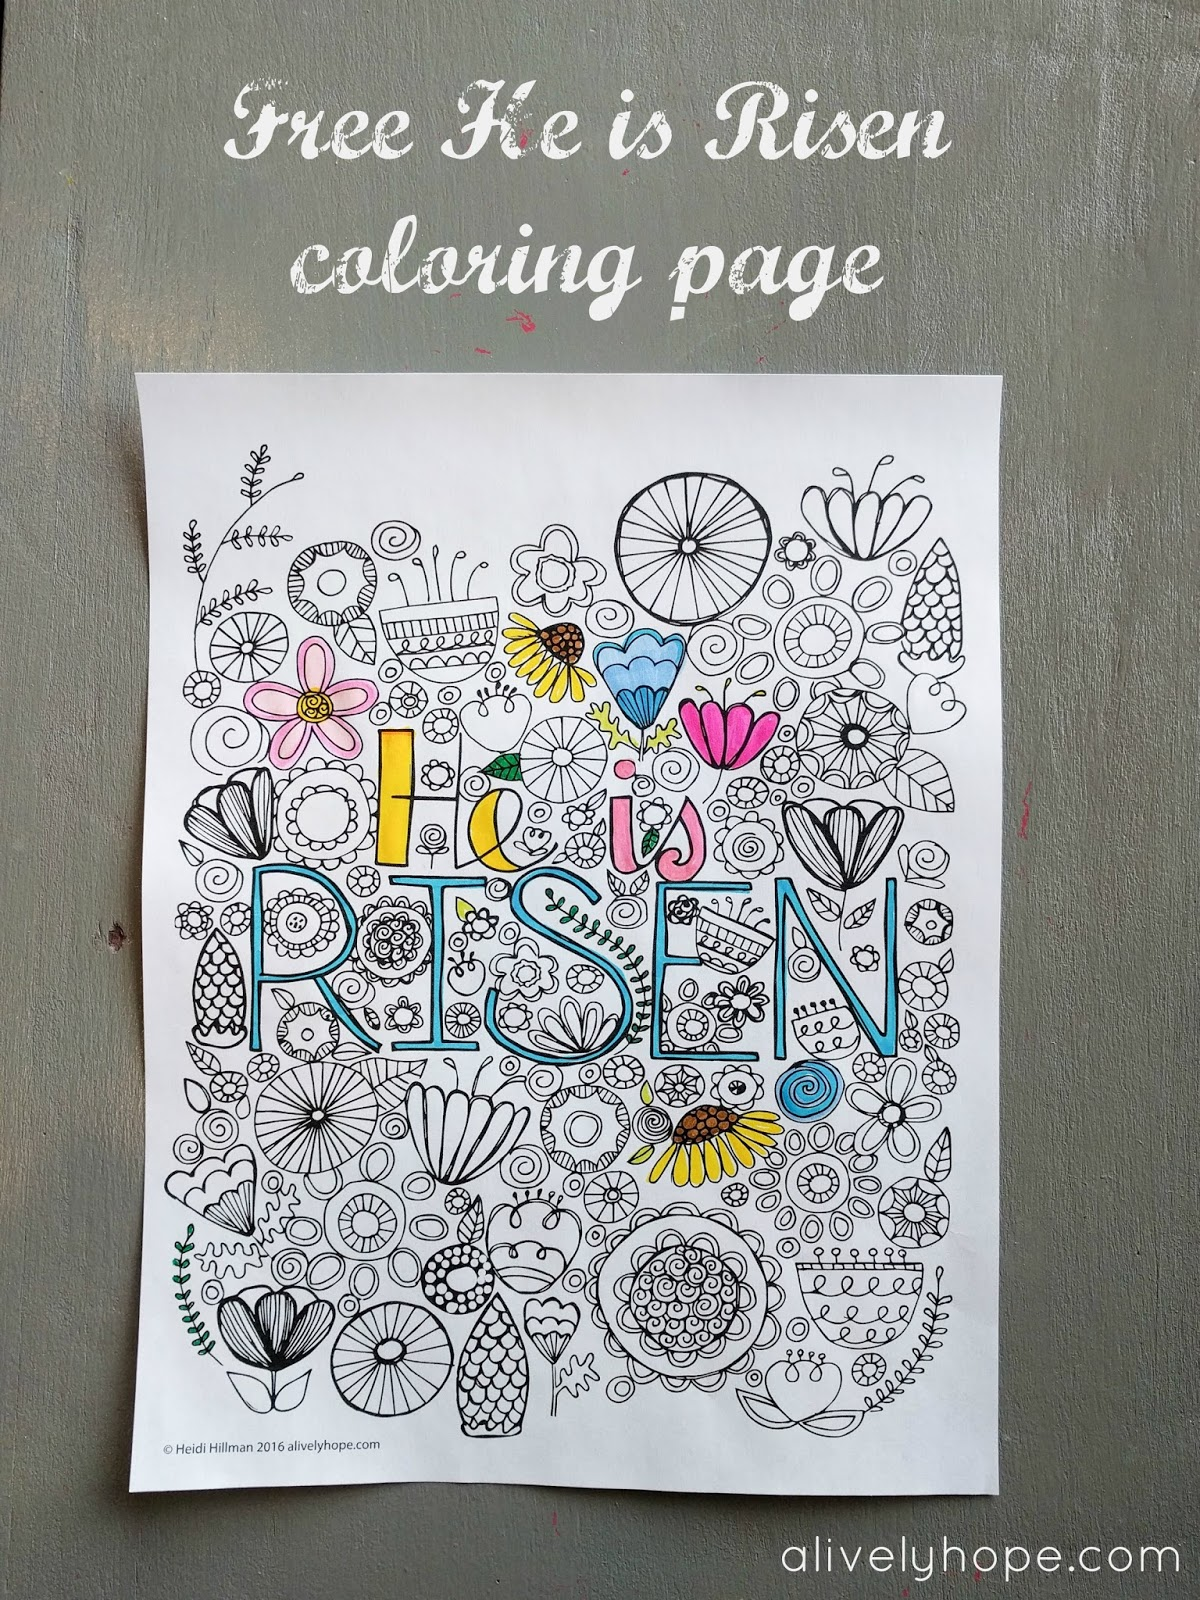 He Is Risen Coloring Page Free Download